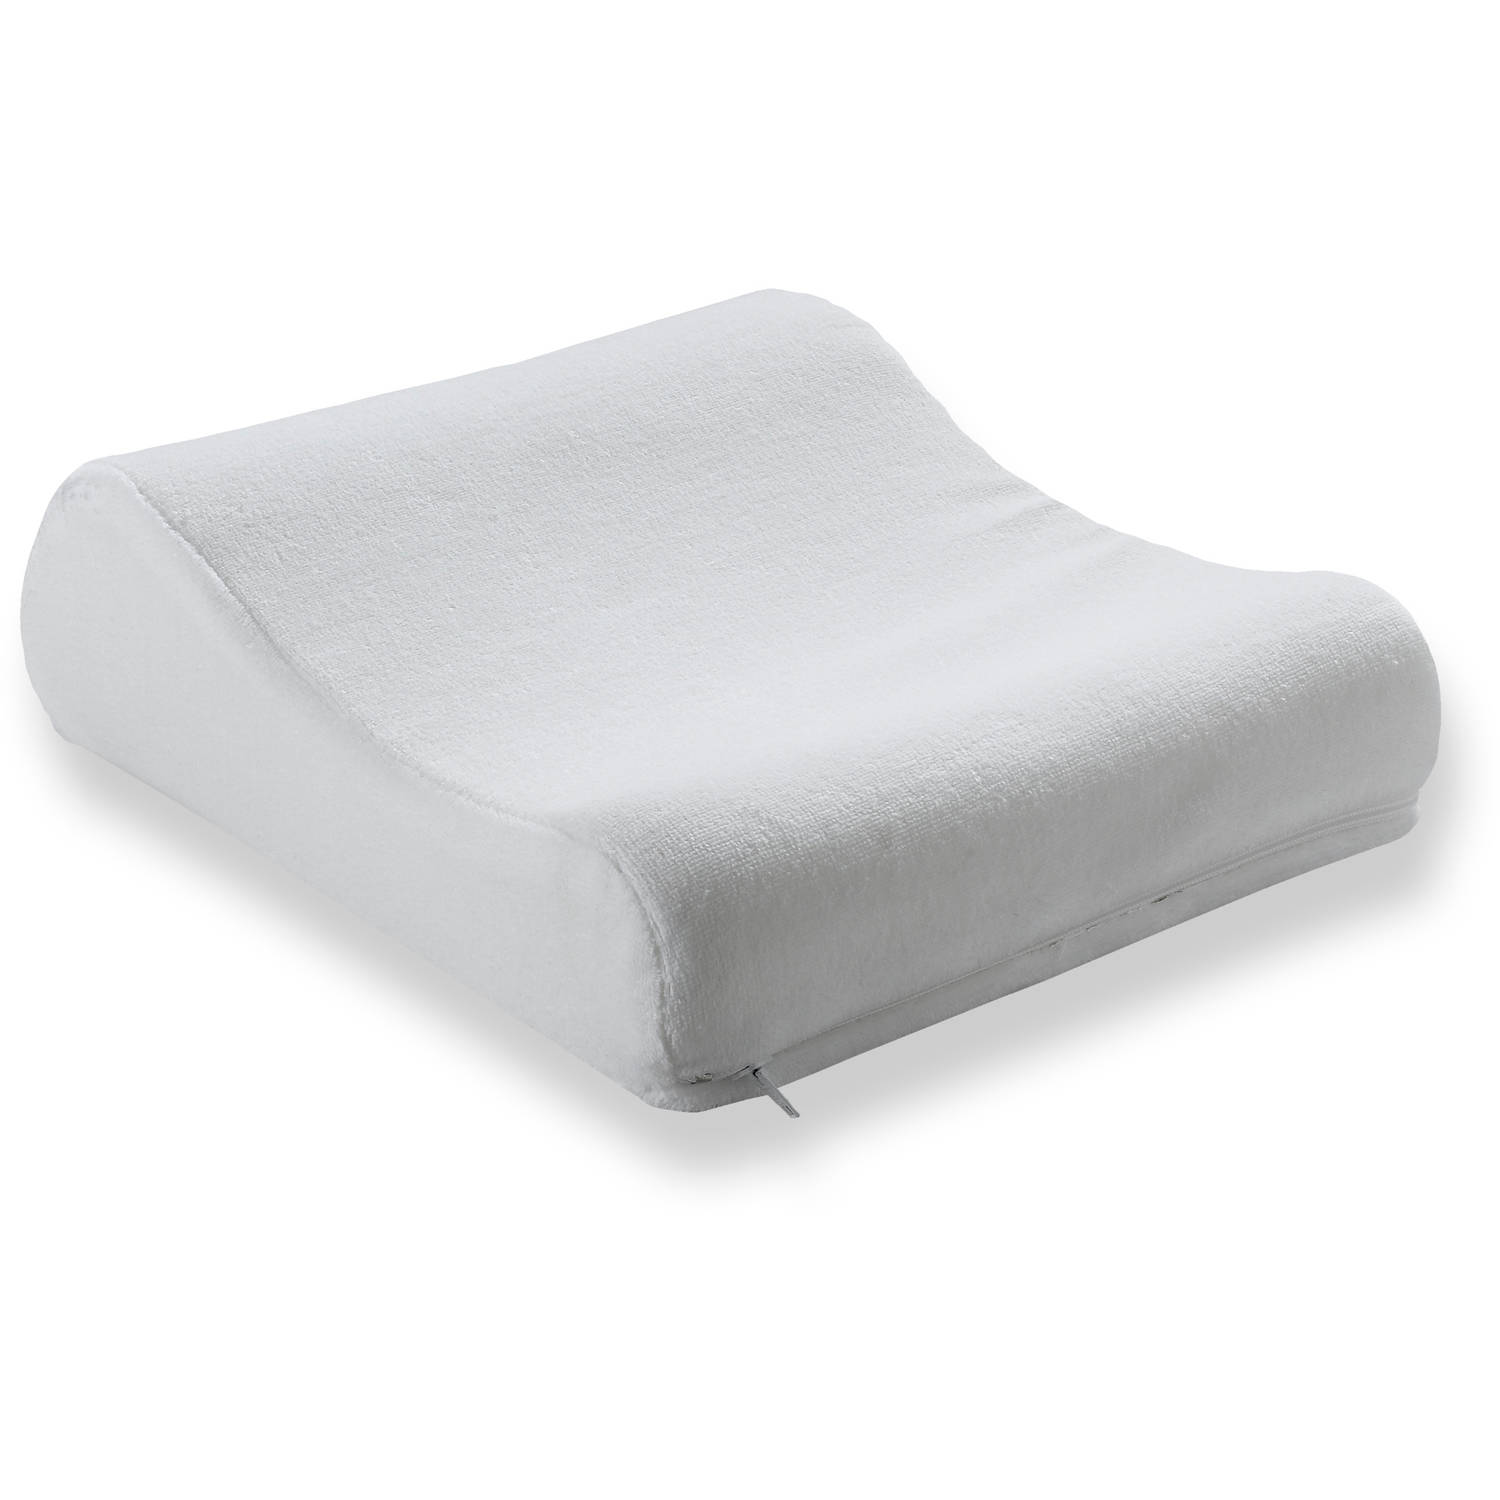 contour bedding for pillows side back tempur bath pillow pain to free overstock memory neck foam shipping product today